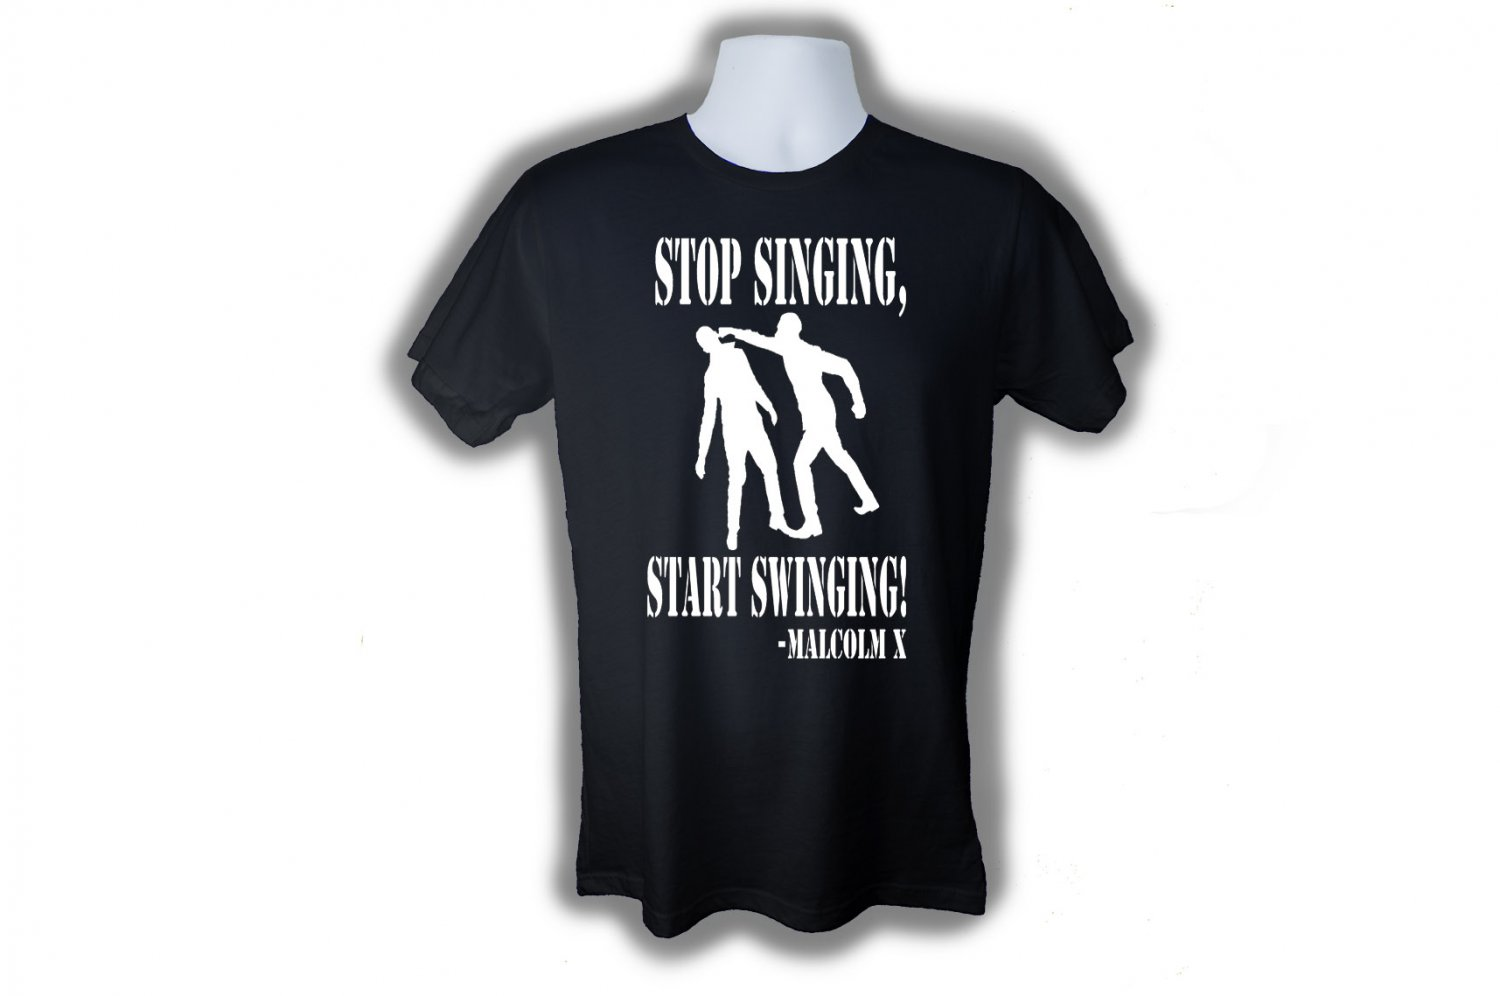 STOP SINGING AND START SWINGING MALCOLM X T-SHIRT (XL)